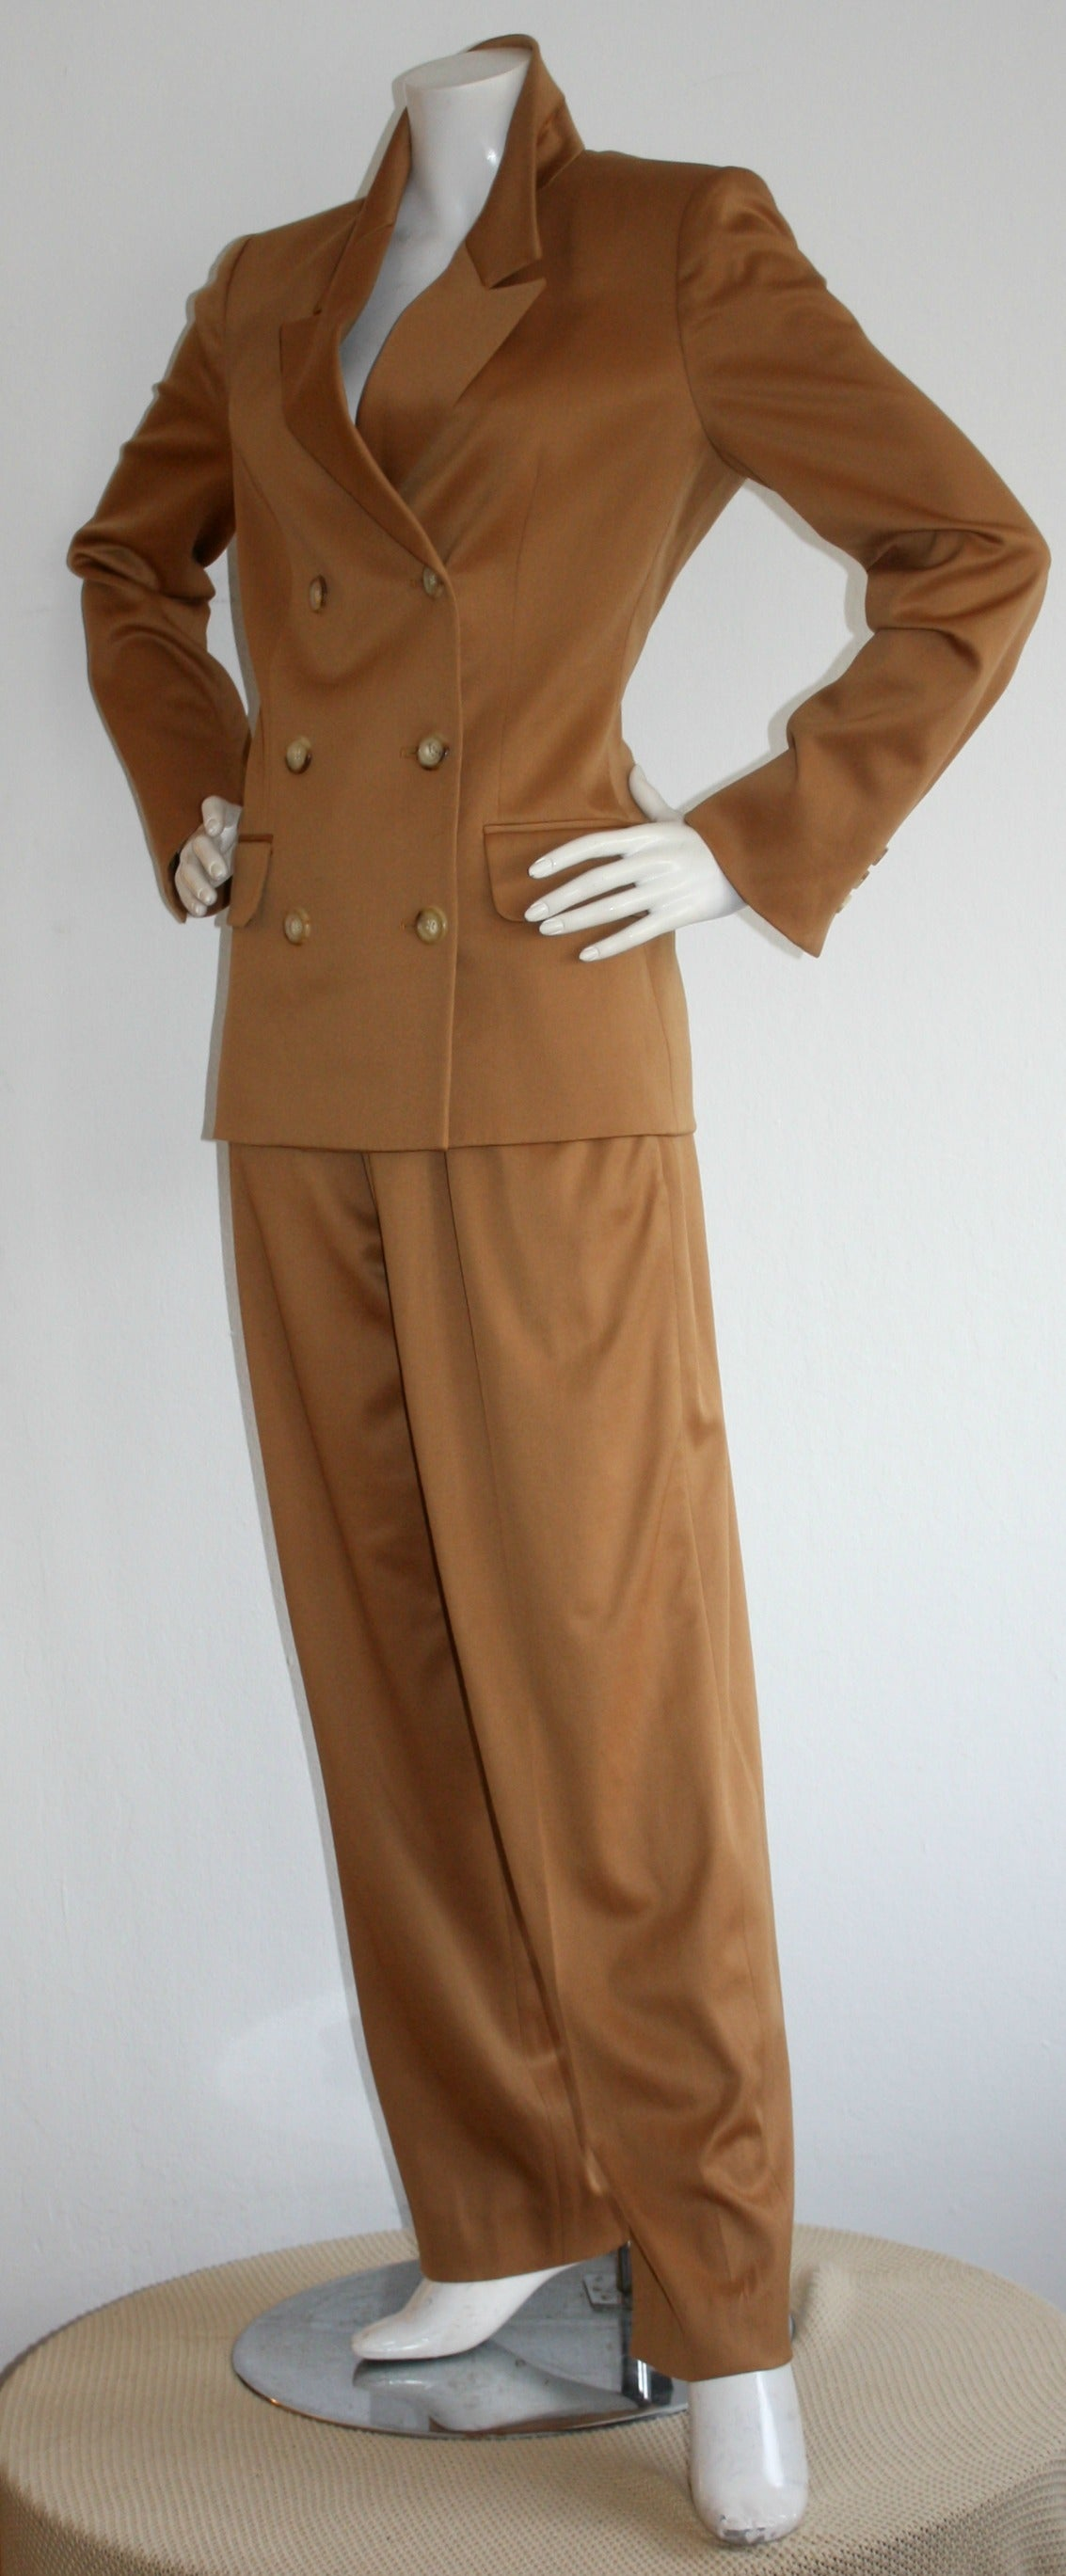 Iconic Vintage Yves Saint Laurent Le Smoking Suit Double Breasted Chic 4